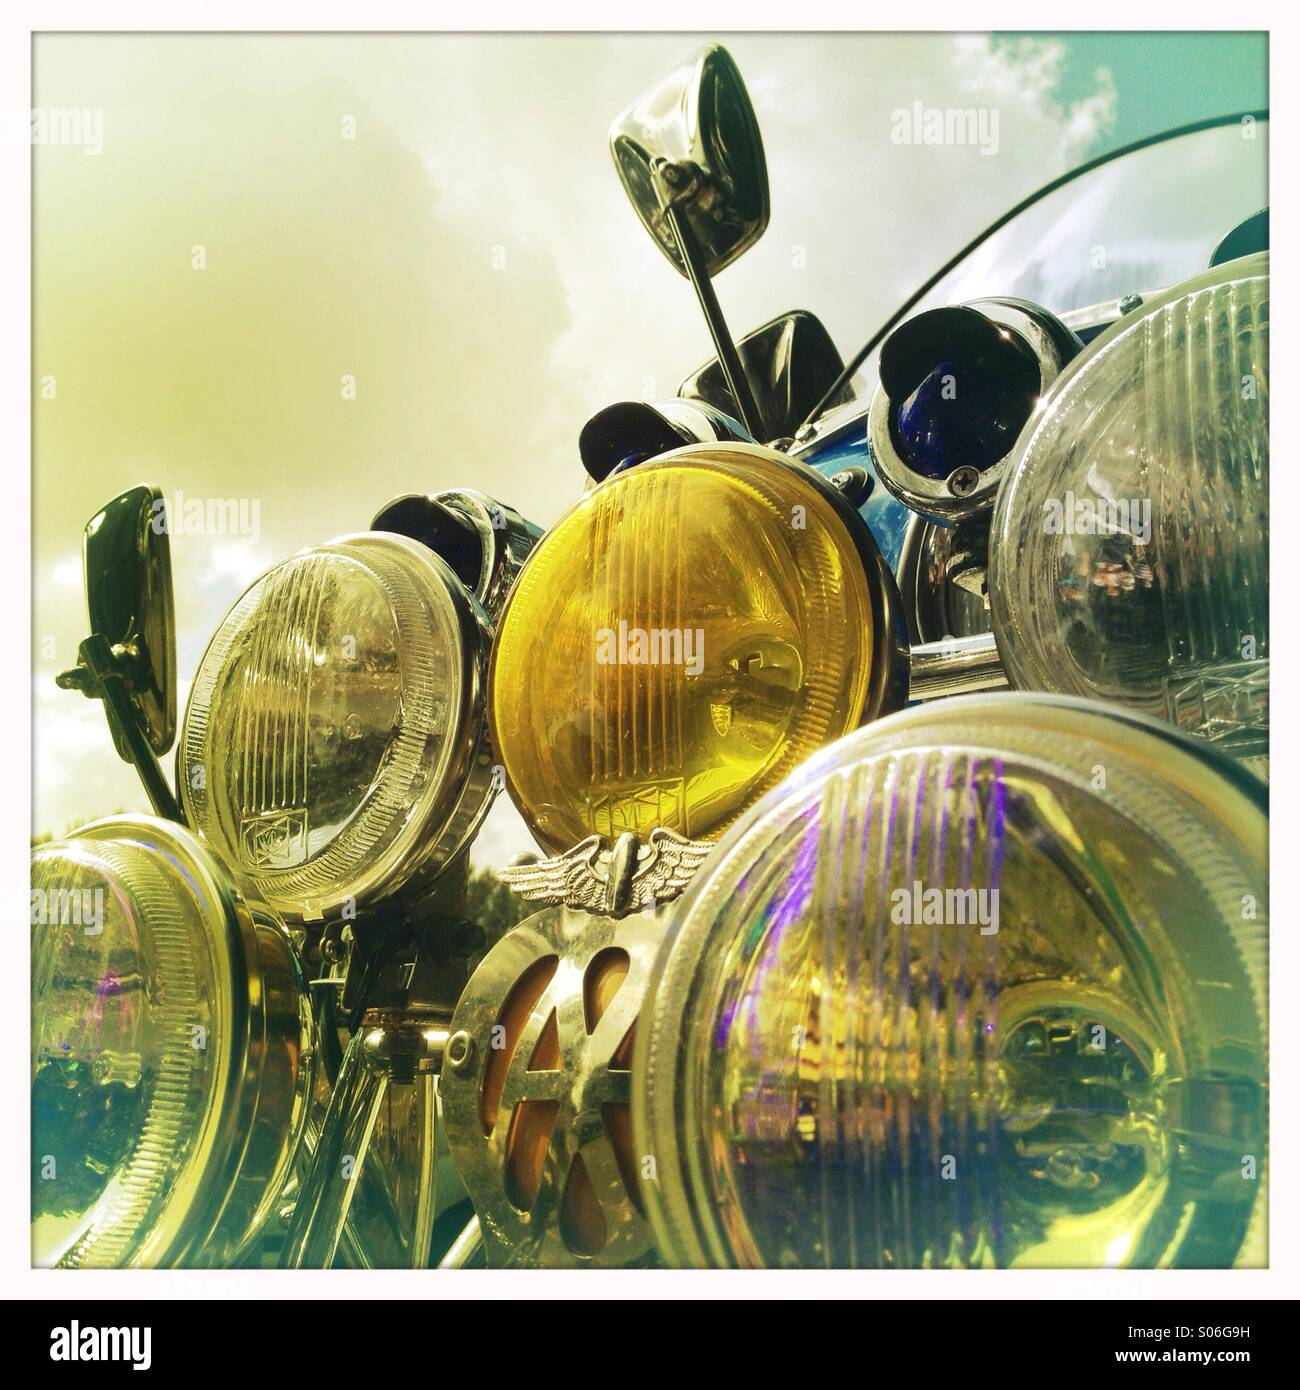 Scooter lamps - Stock Image